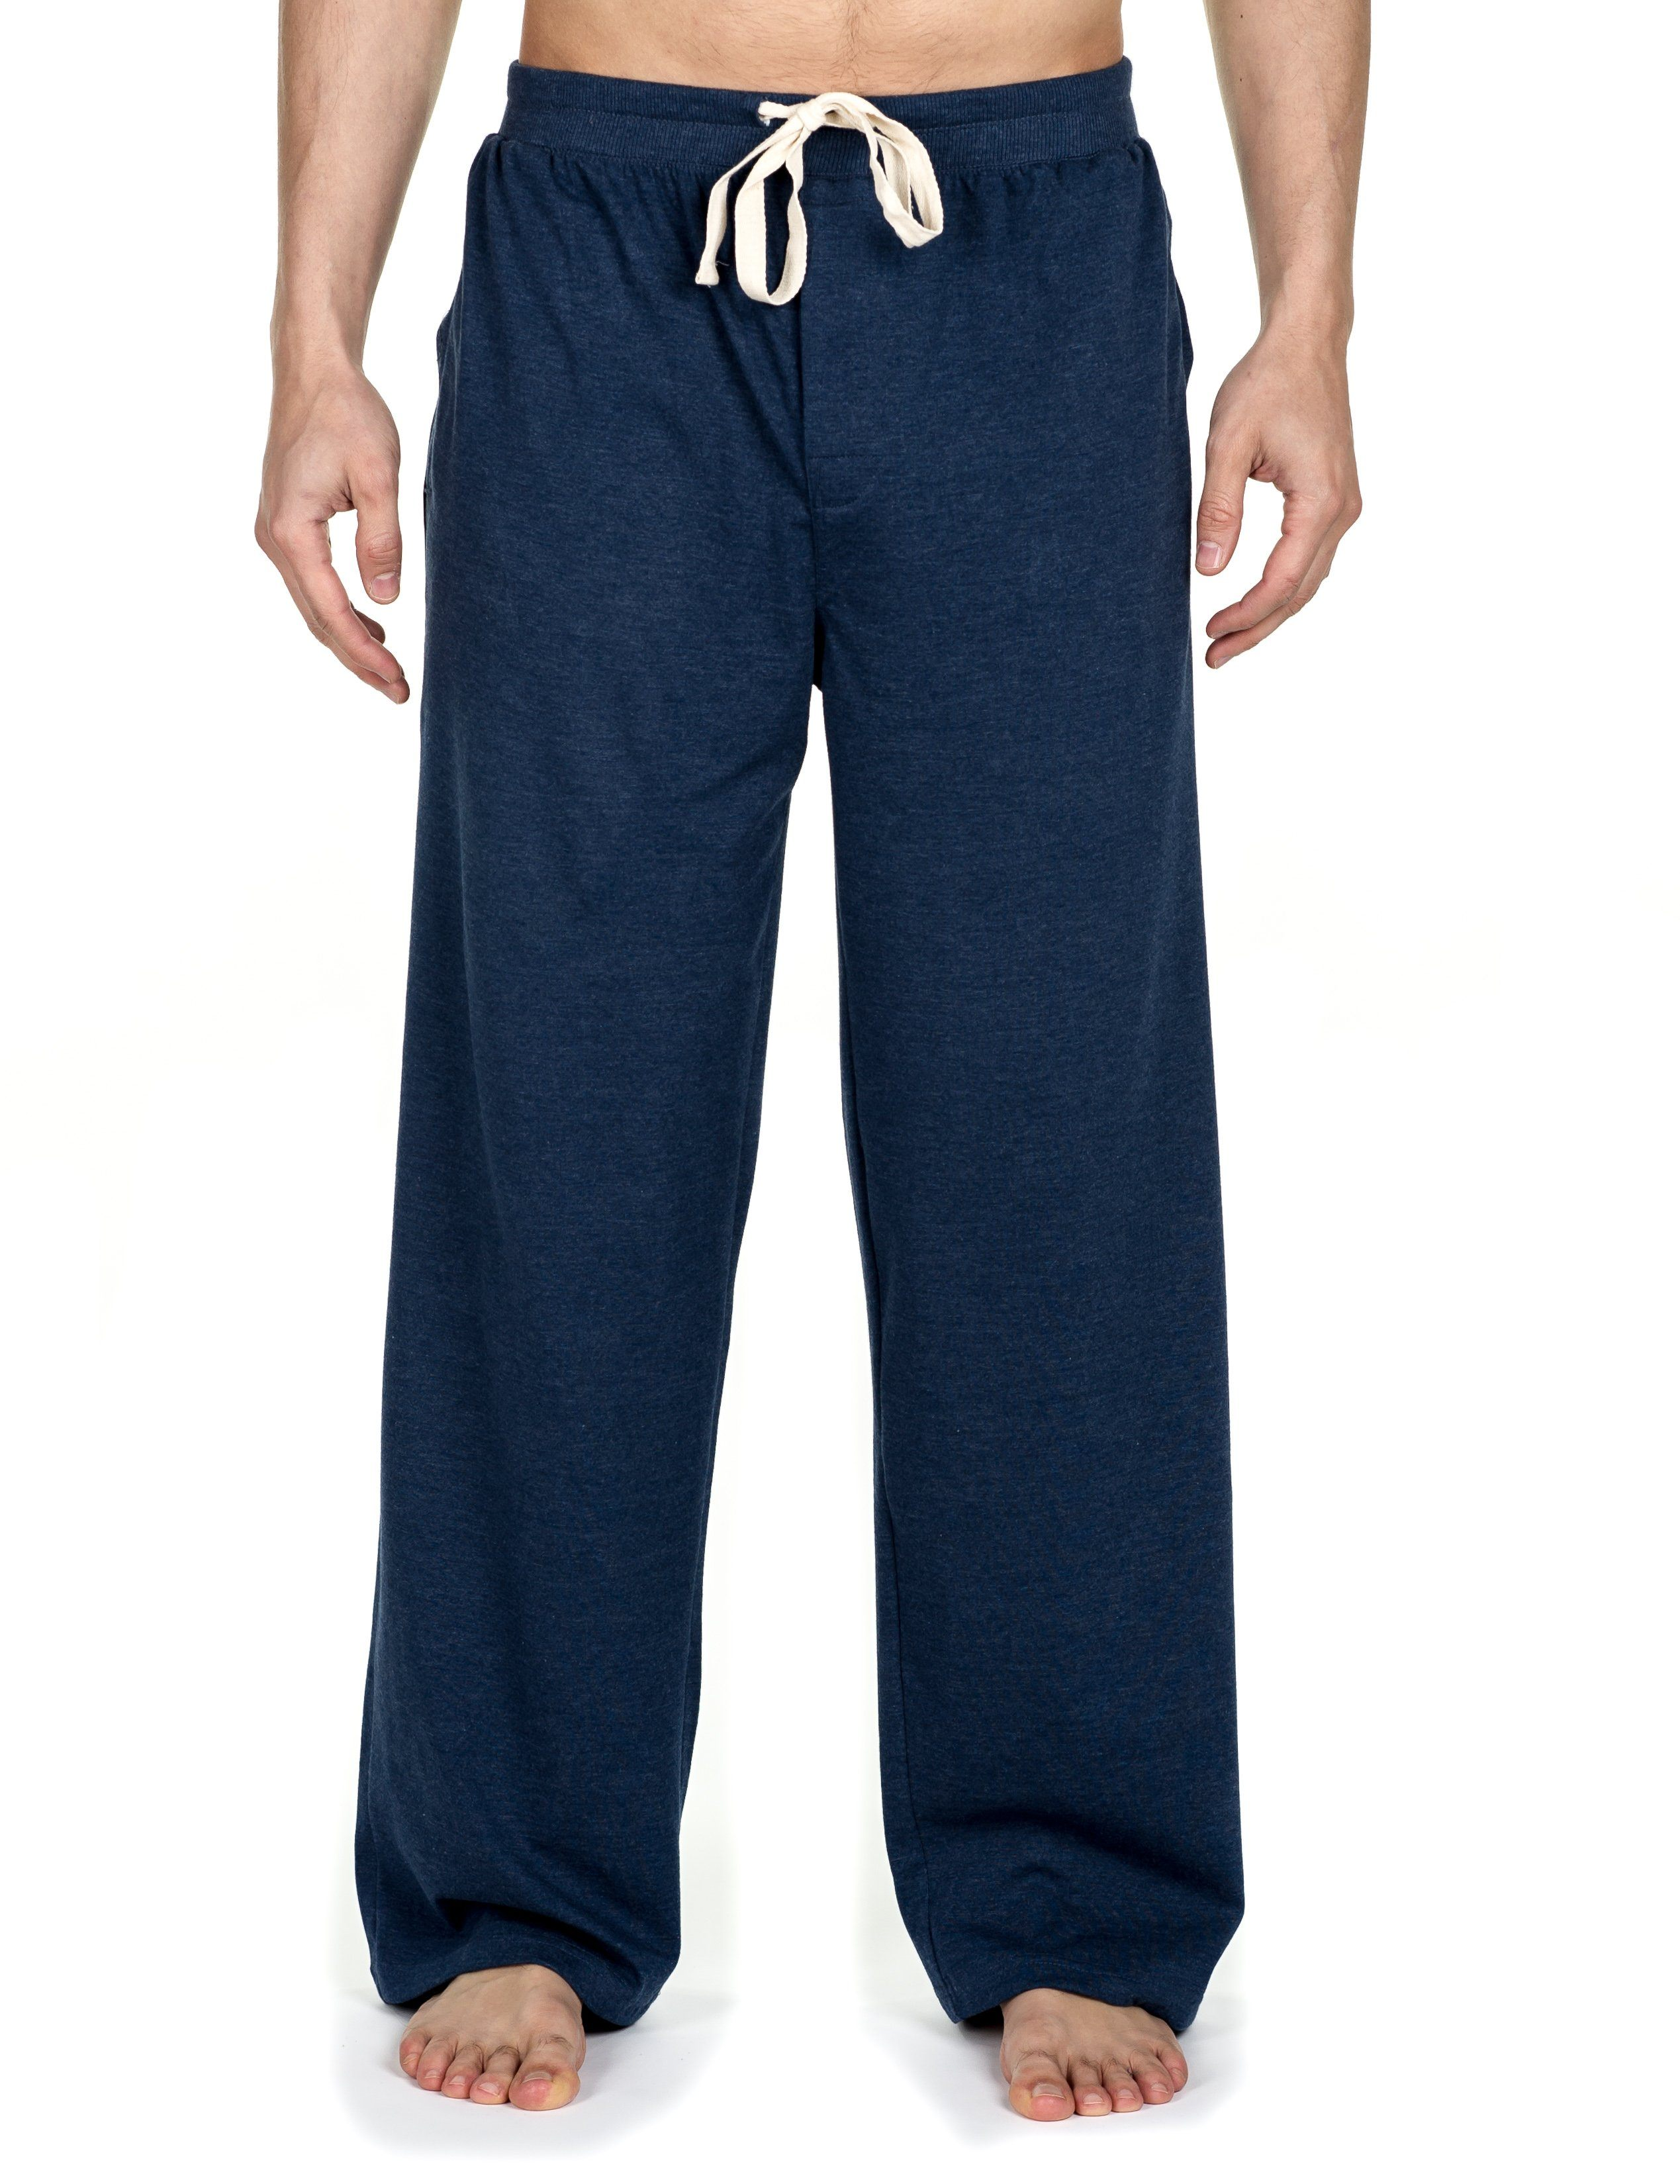 Mens Knit Lounge/Sleep Pants